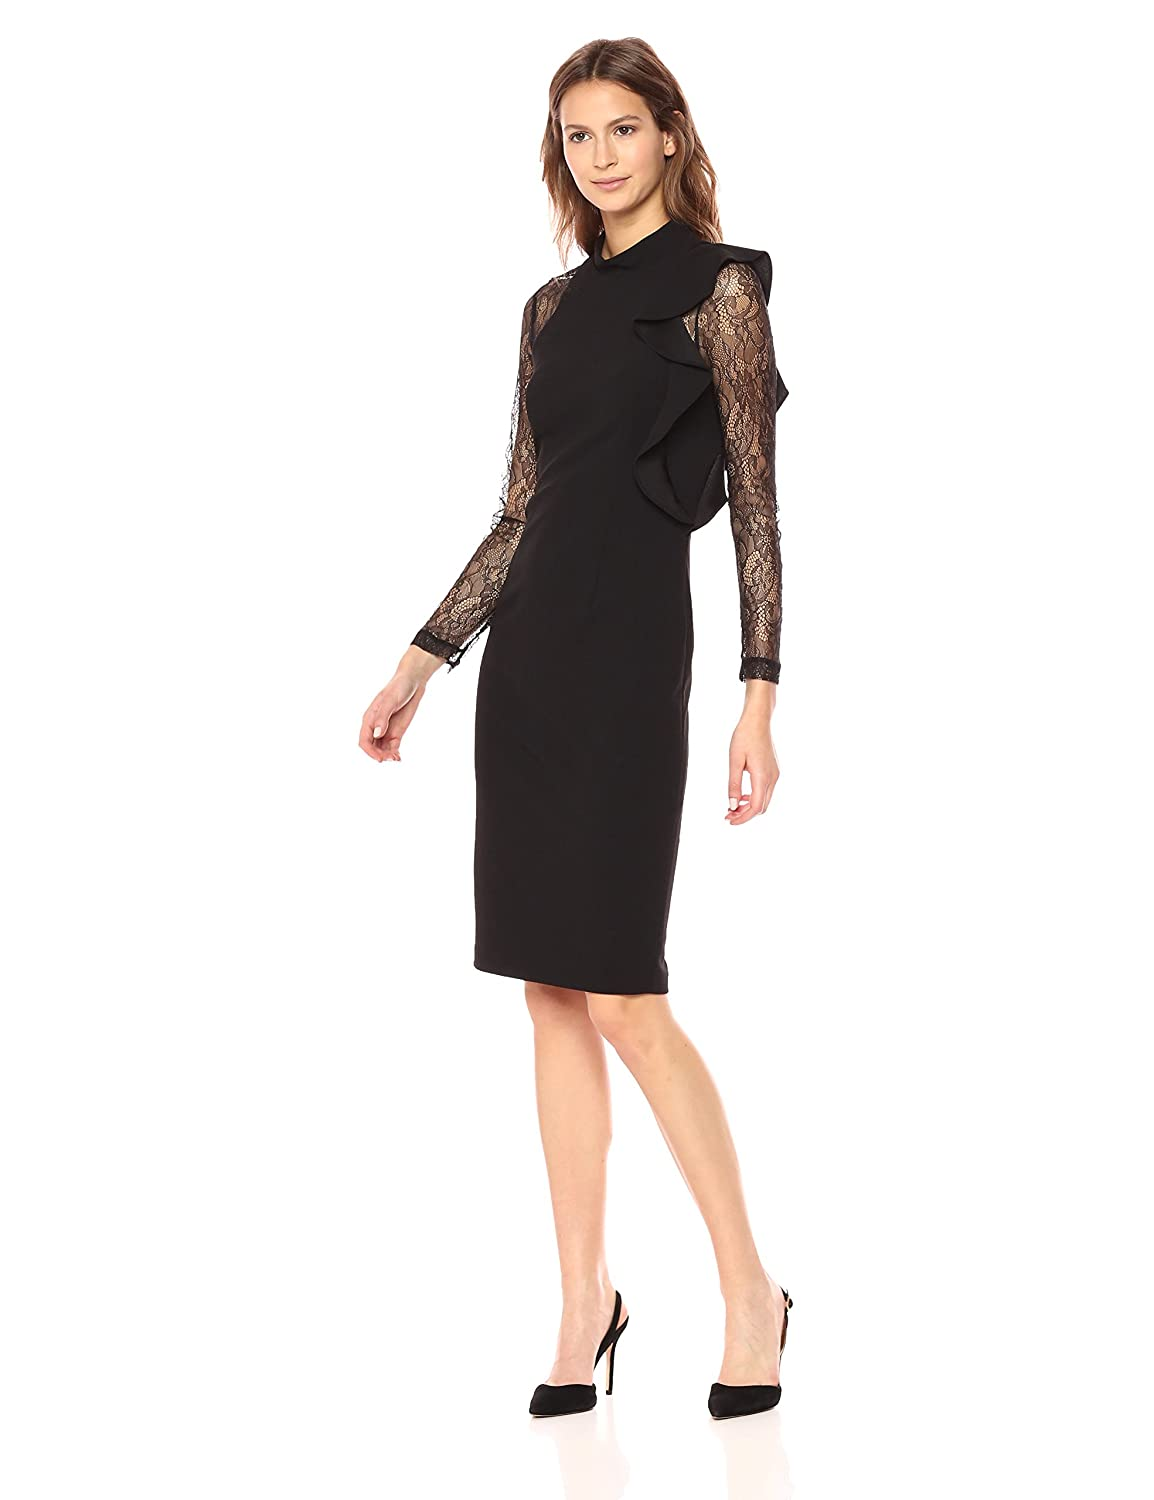 a351990d2b9 Top1  Adrianna Papell Women s Mock Neck Sheath Dress With Lace